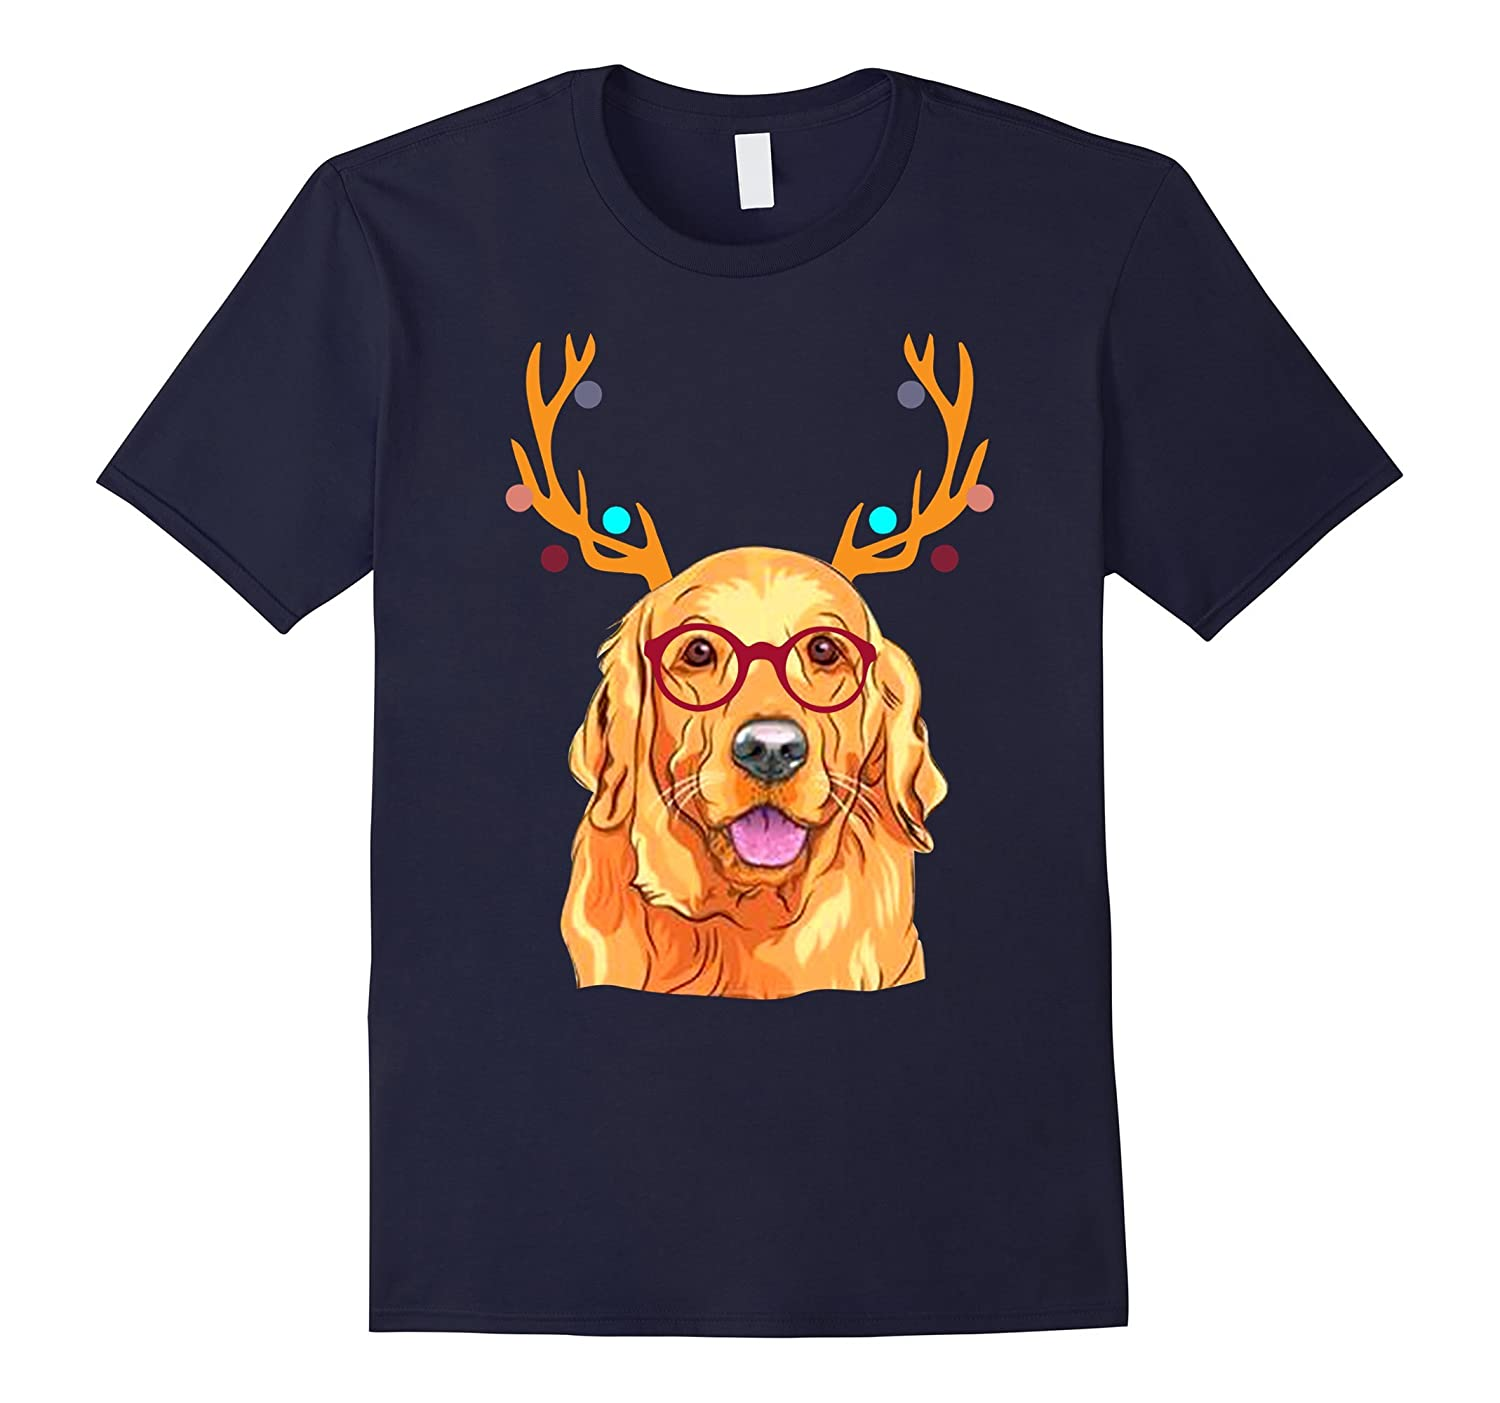 1807c57afe XMAS Funny Golden Retriever with Antlers Christmas T Shirt-ANZ ...